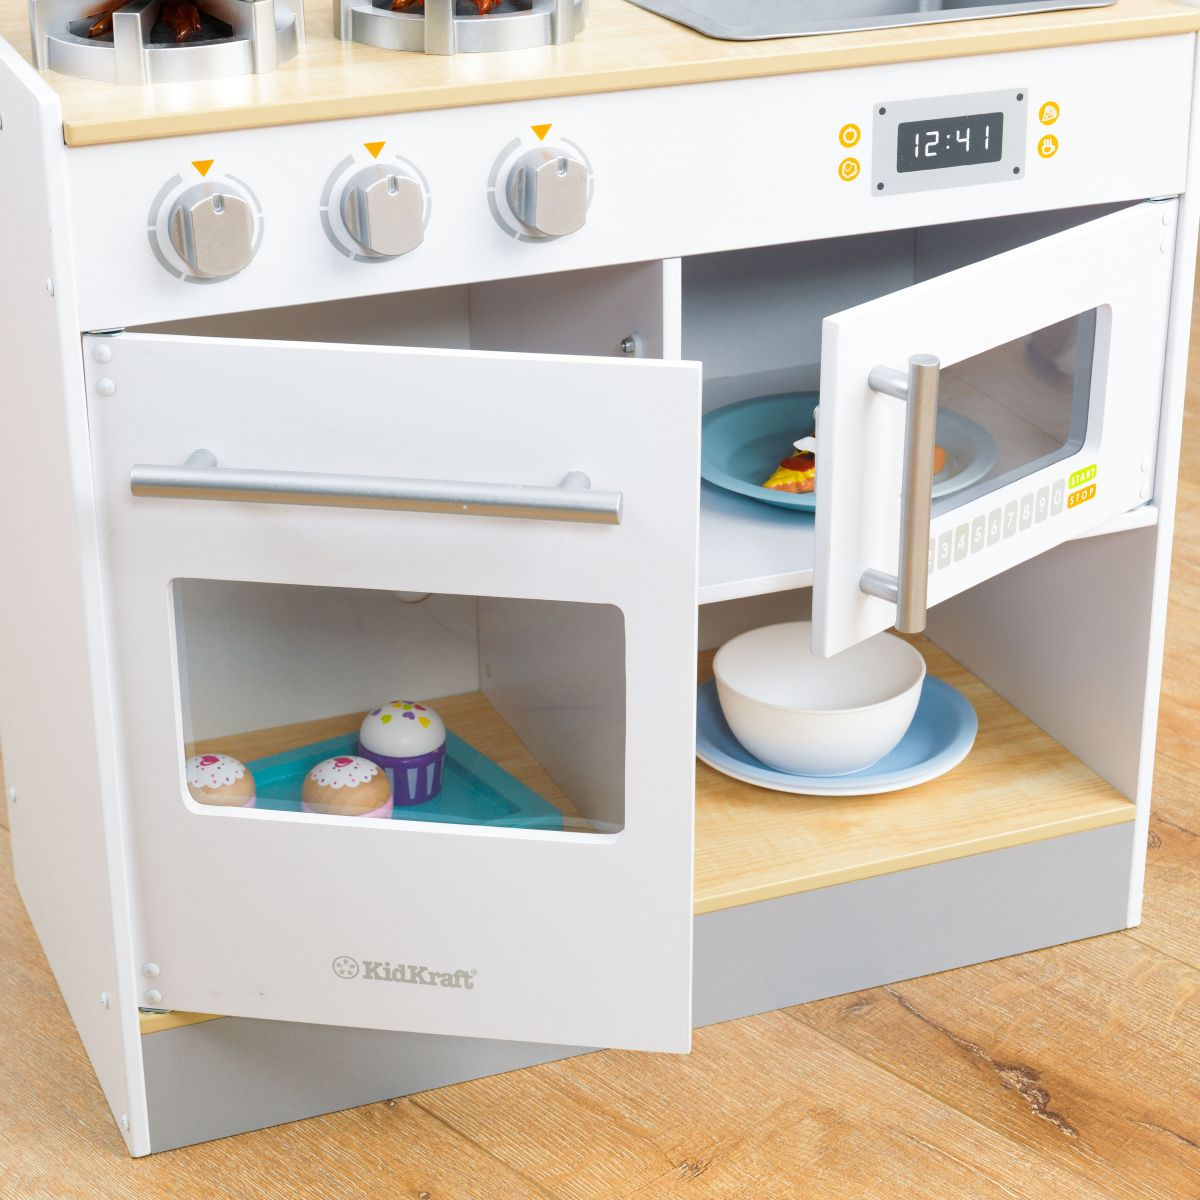 Kidkraft Let\'s Cook Kitchen, Kidkraft Kitchen, wooden kitchens ...